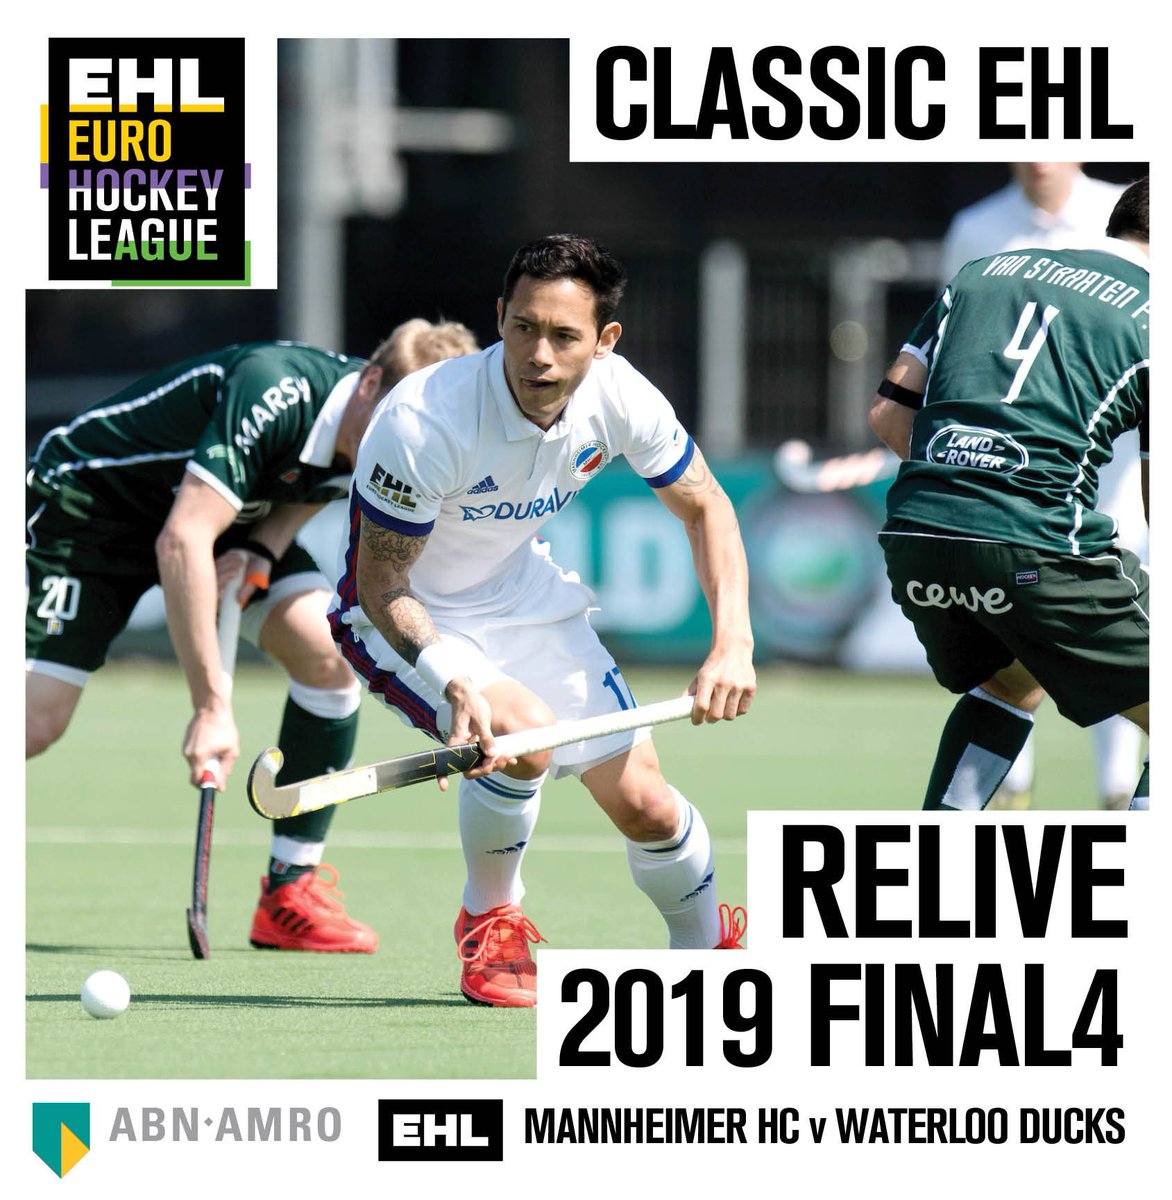 #ehlclassicmoments Relive again today! https://t.co/W4xWEilaXj